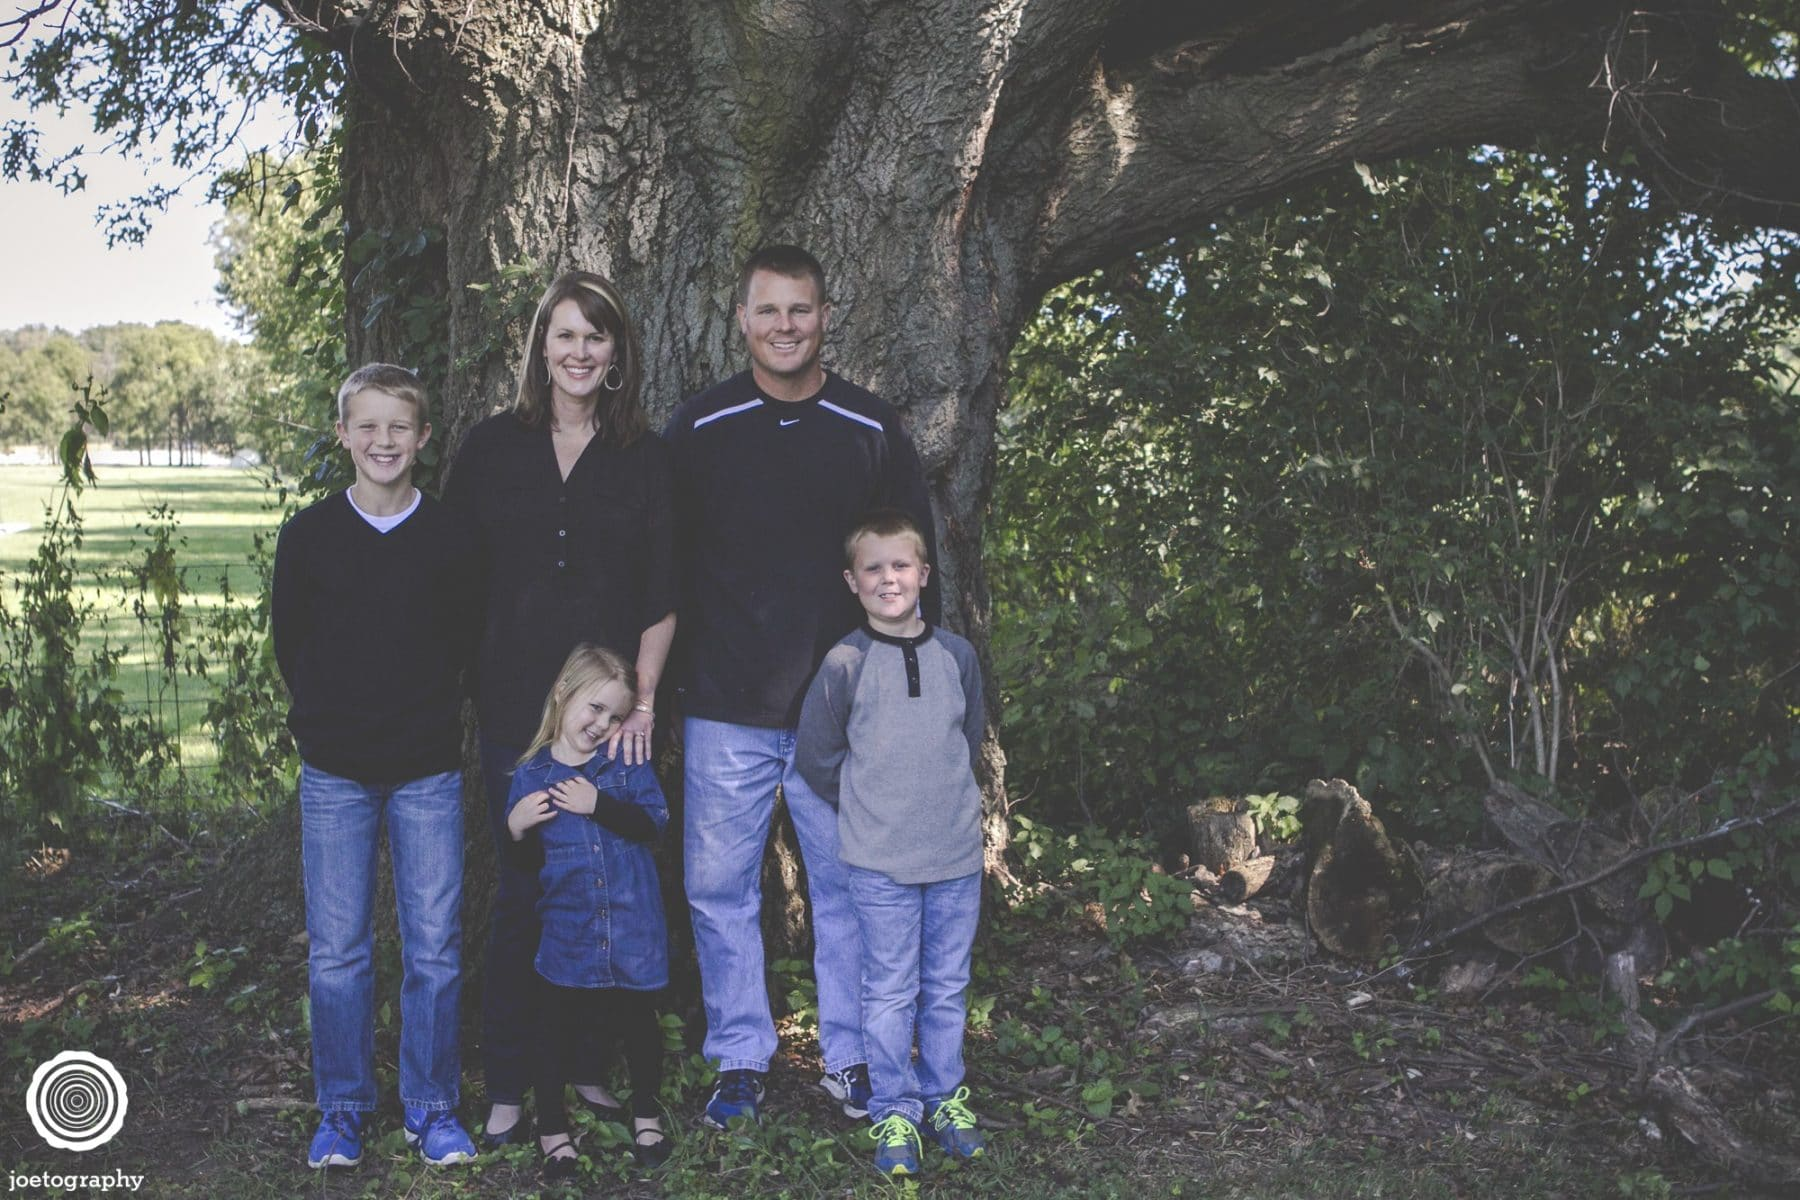 evans-family-photographs-westfield-indiana-3